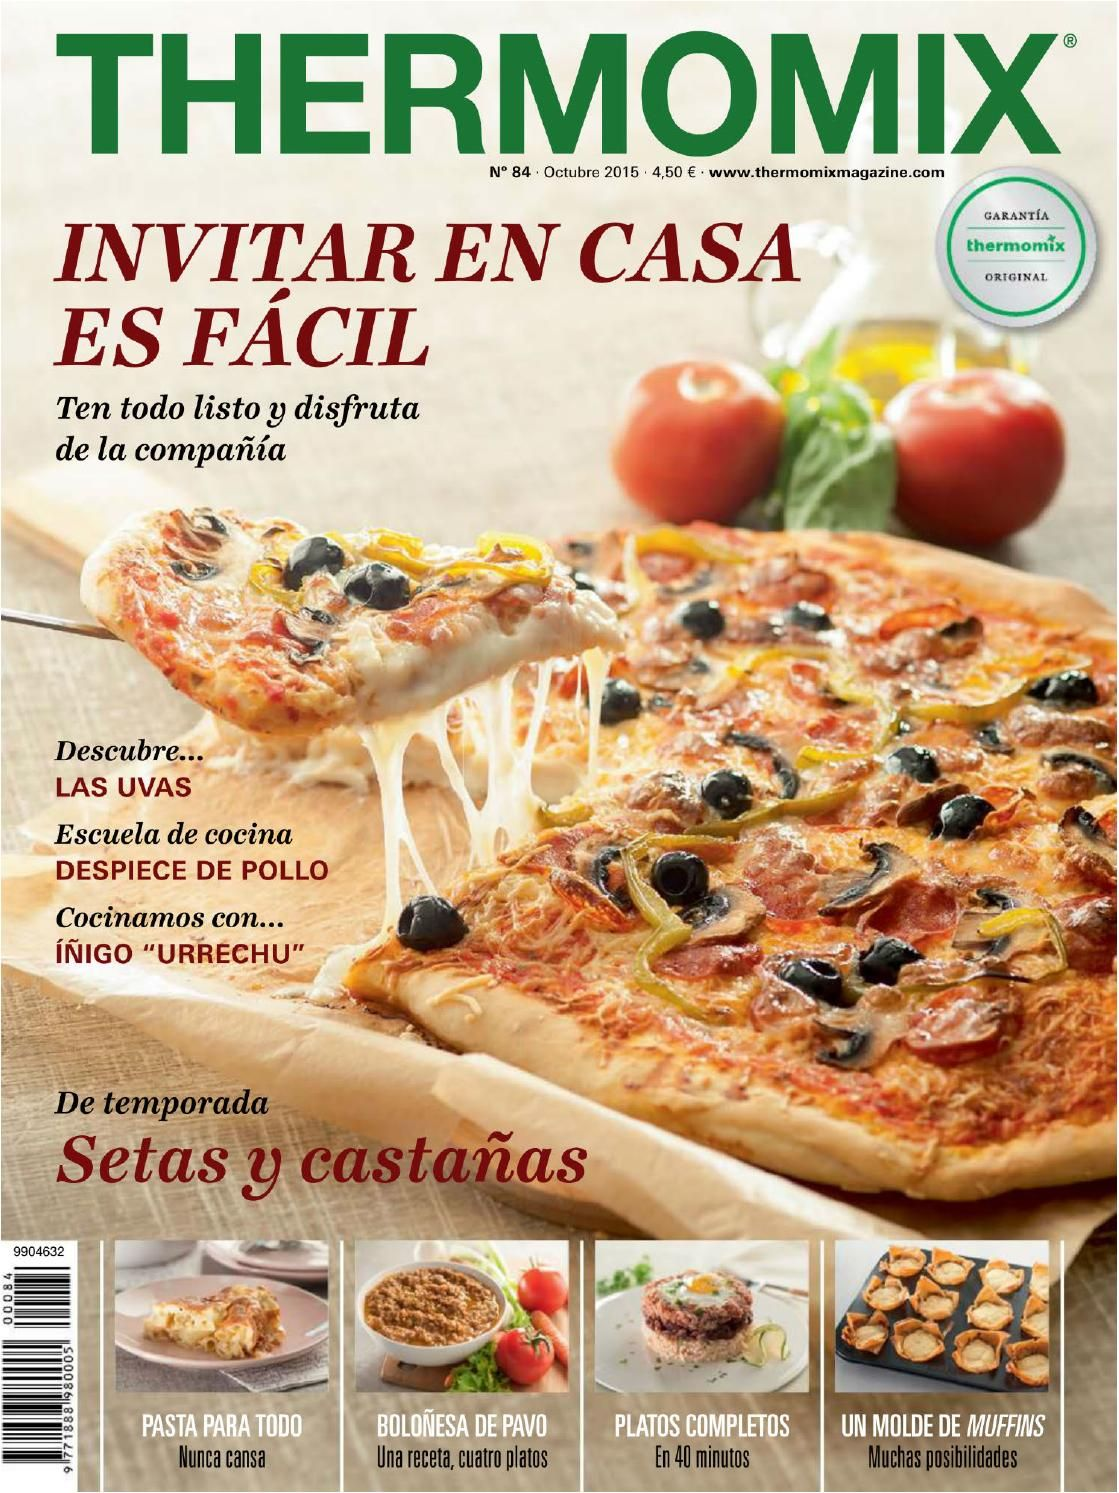 Libro De Postres Thermomix Revista Thermomix N⺠84 Octubre 2015 By Argent Issuu